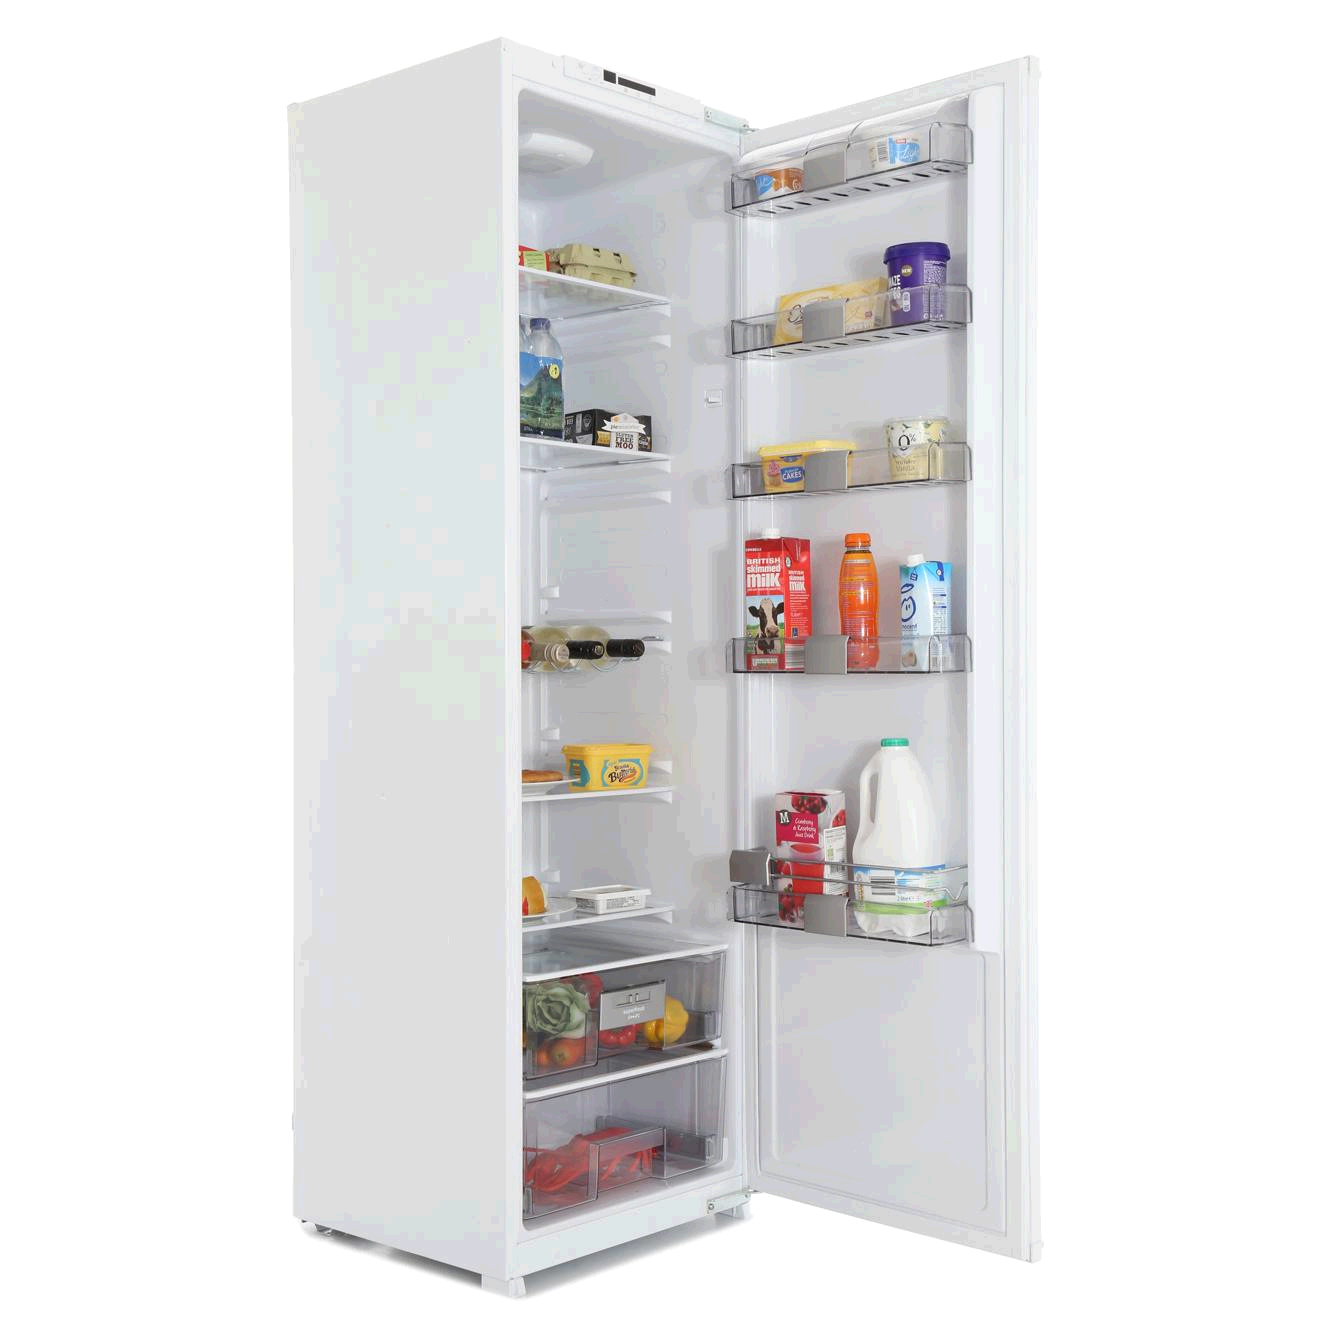 Blomberg Built in Upright Larder Fridge Integrated 315ltr H1707 W545 D600